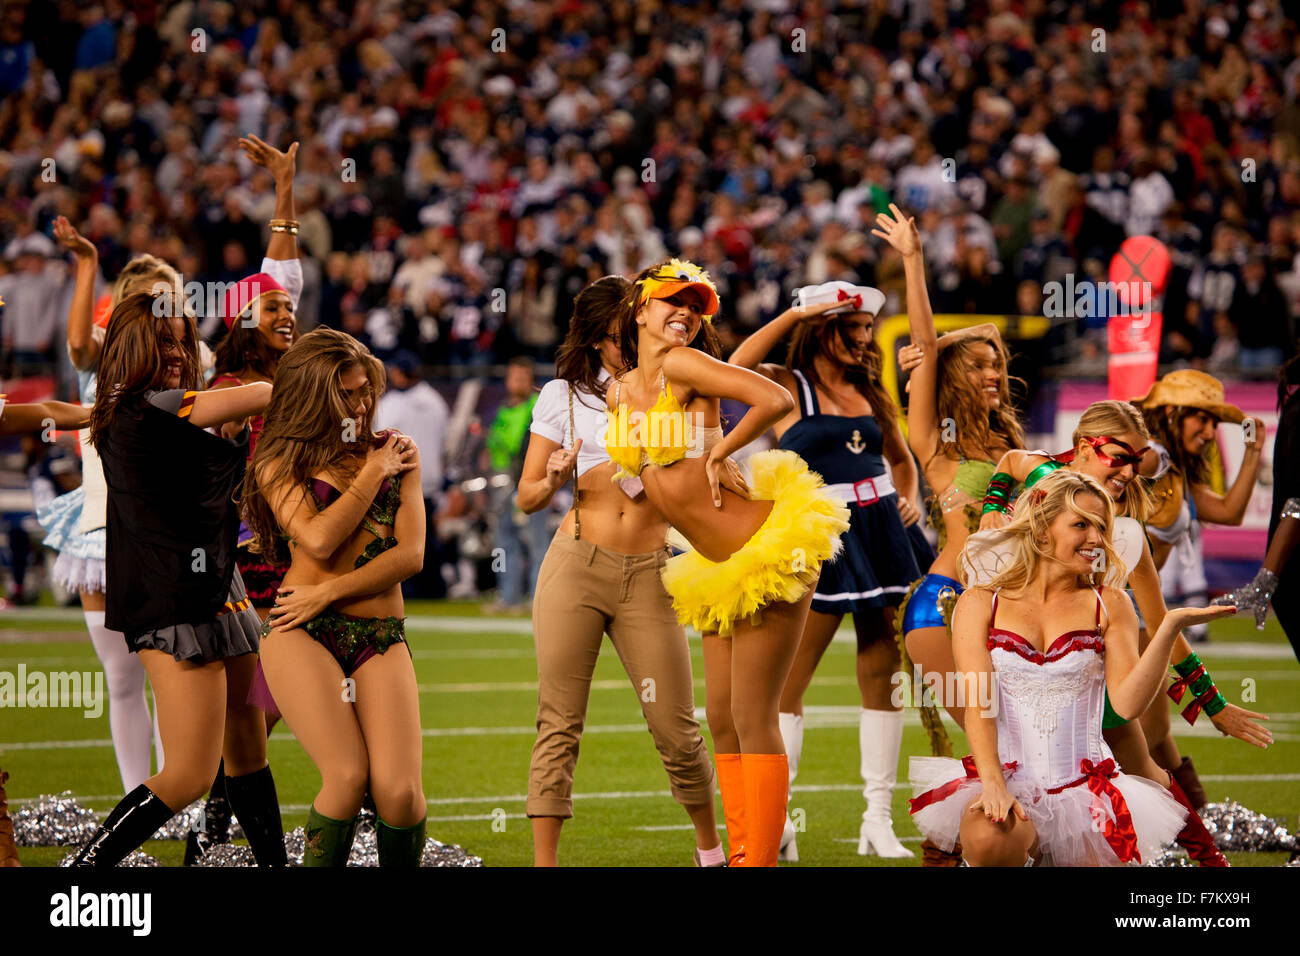 3520e8356521 Dallas Cowboys Cheerleaders Imágenes De Stock & Dallas Cowboys ...